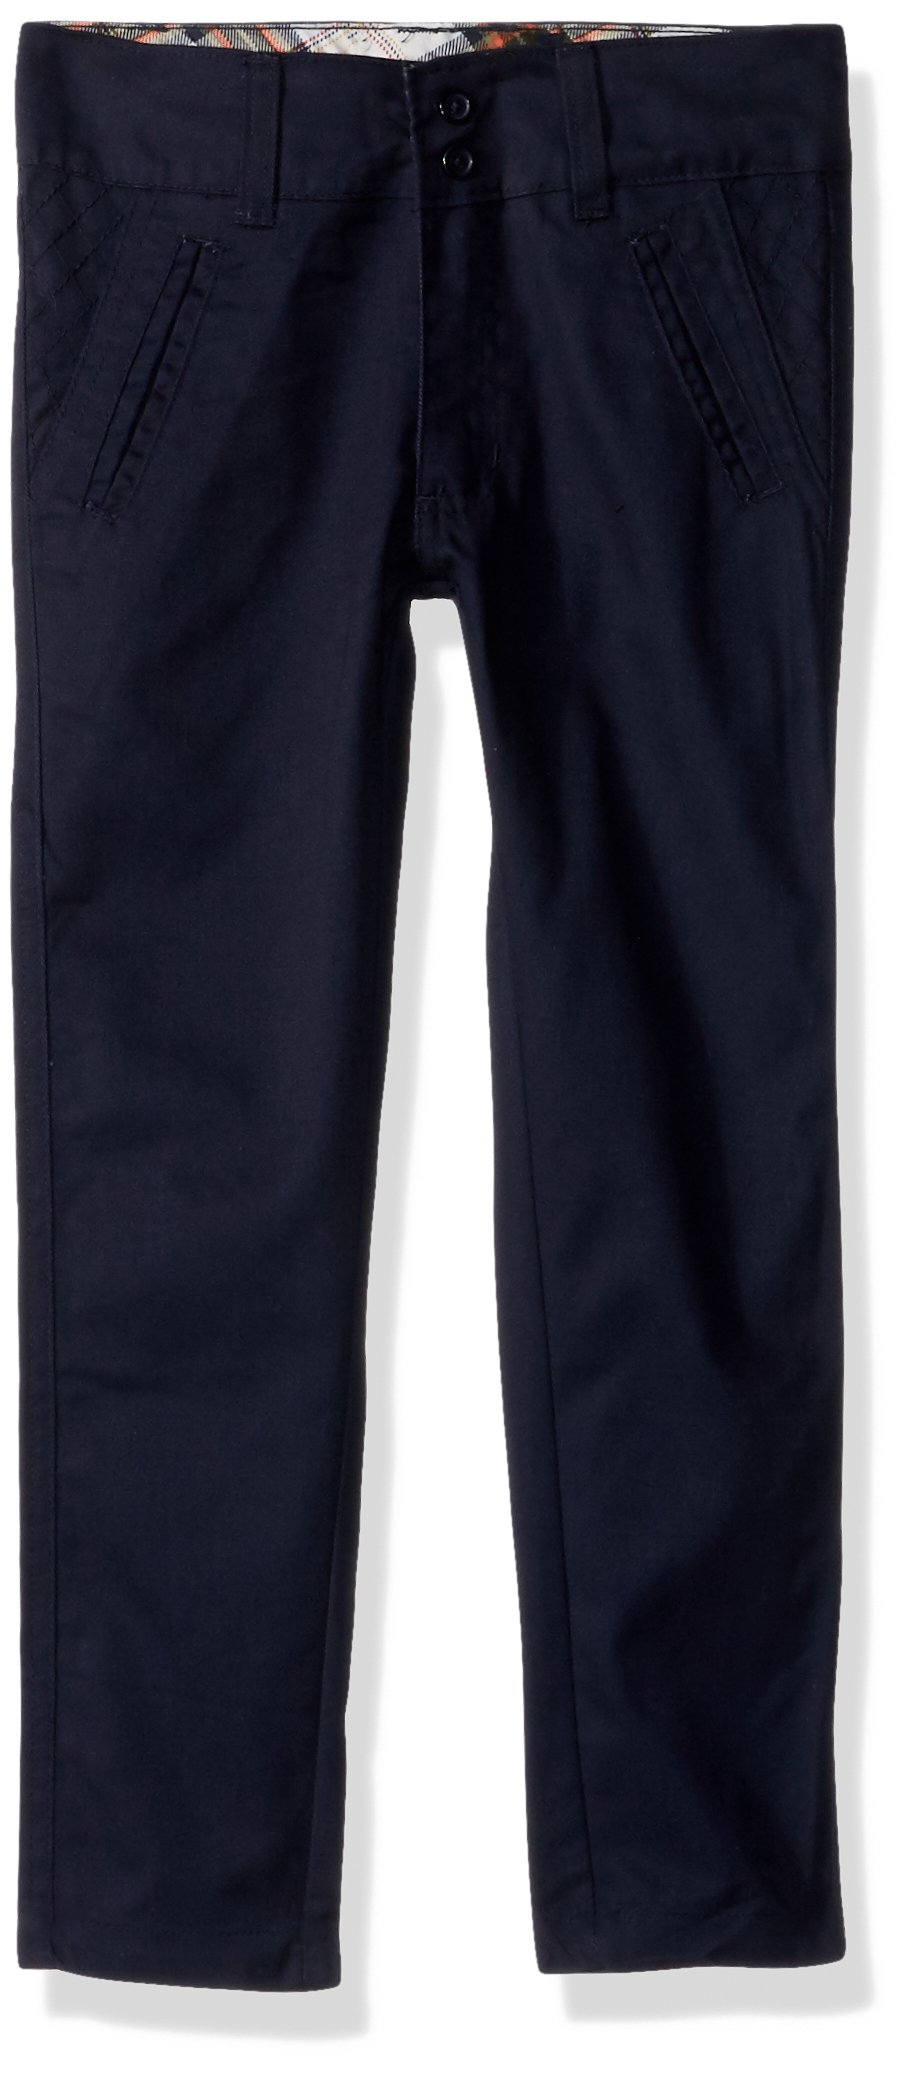 Eddie Bauer Little Girls' Twill Pant (More Styles Available), Navy-PQHK, 5